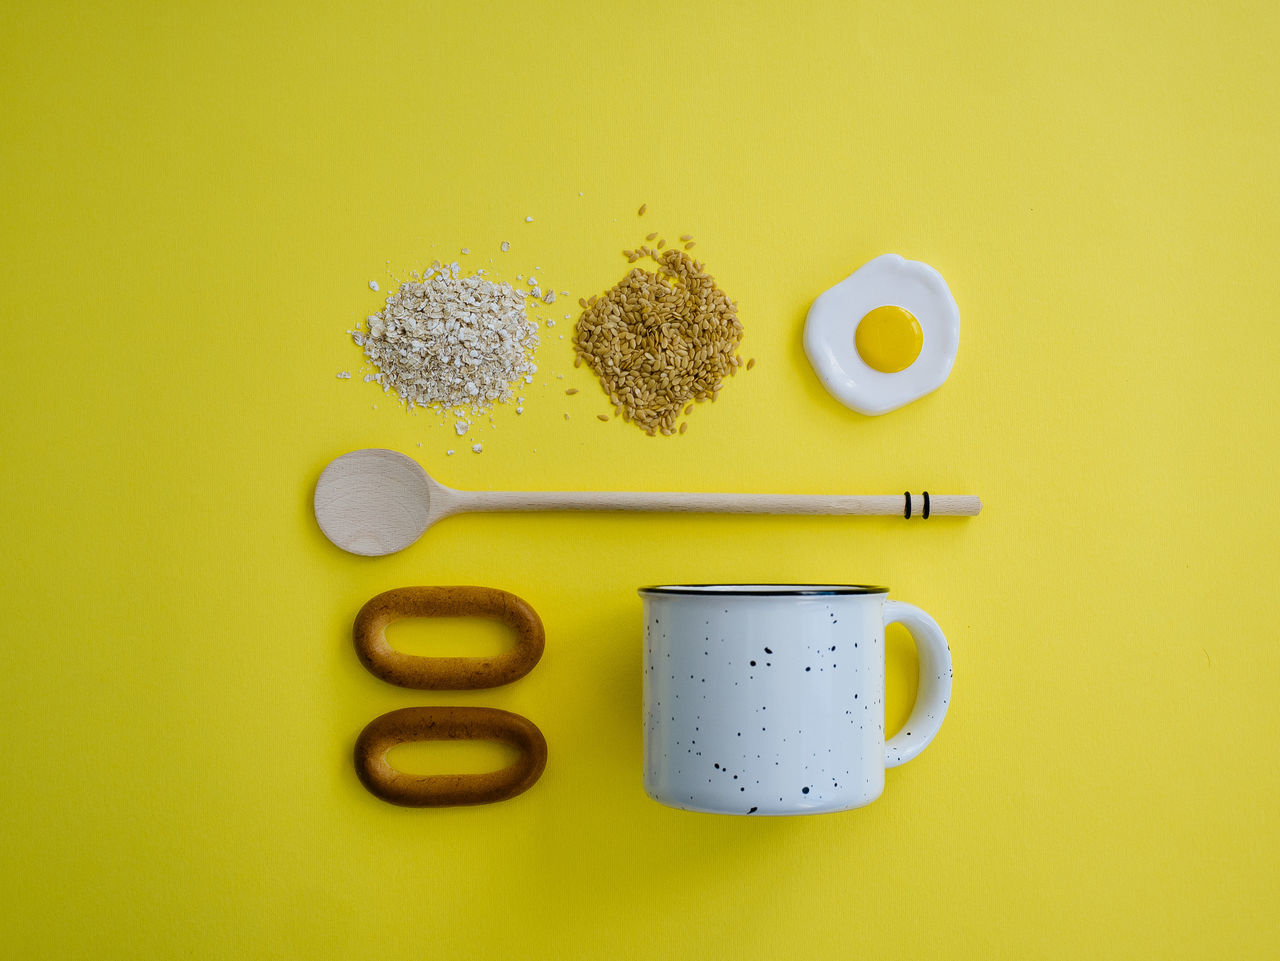 Bagel Breakfast Close-up Cooking Breakfast Cooking Ingredient Cooking Time Deceptively Simple Flax Seeds Flaxseed Food Food And Drink Food Photography Food Styling Freshness Healthy Eating Indoors  No People Oatmeal Omlette Table Yellow Yellow Background Visual Feast